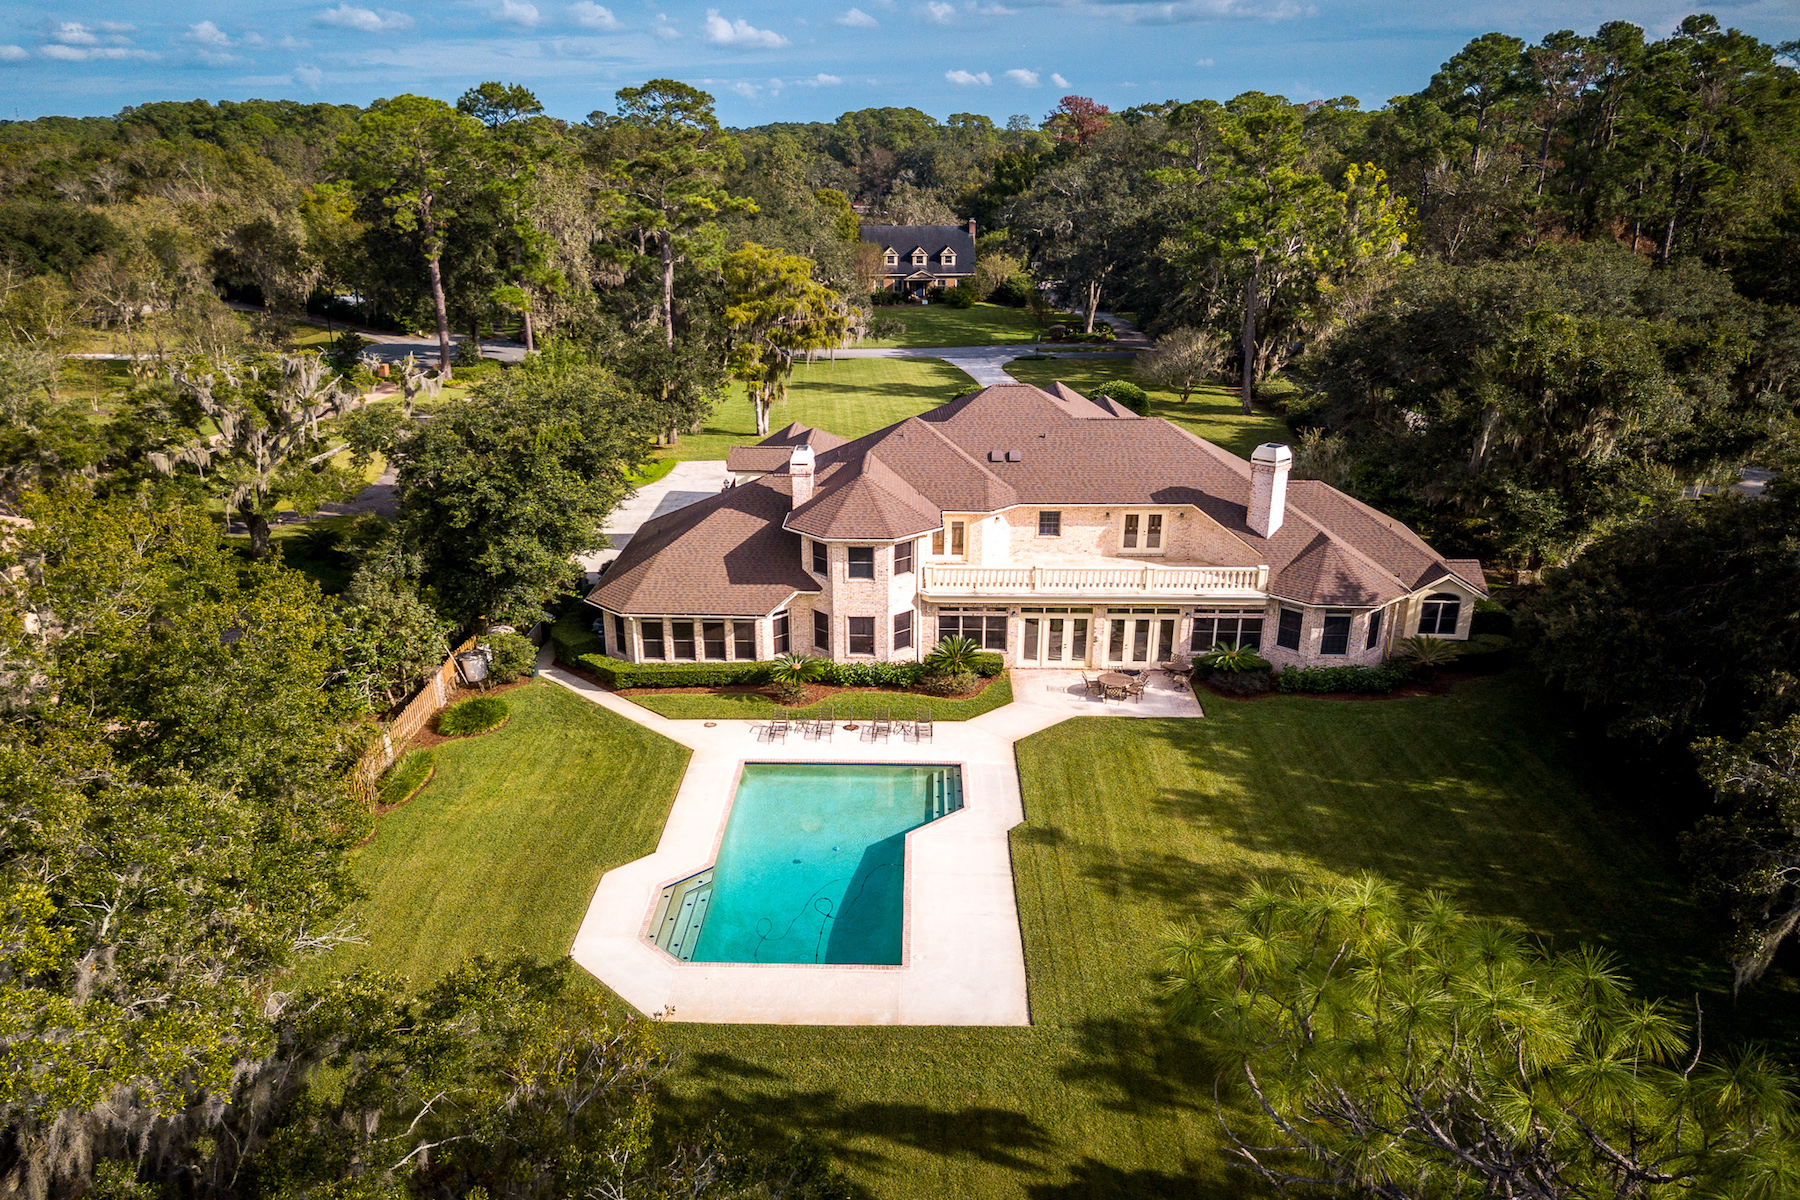 Single Family Homes for Active at Riverfront Brick 11032 Riverport Drive West Jacksonville, Florida 32223 United States